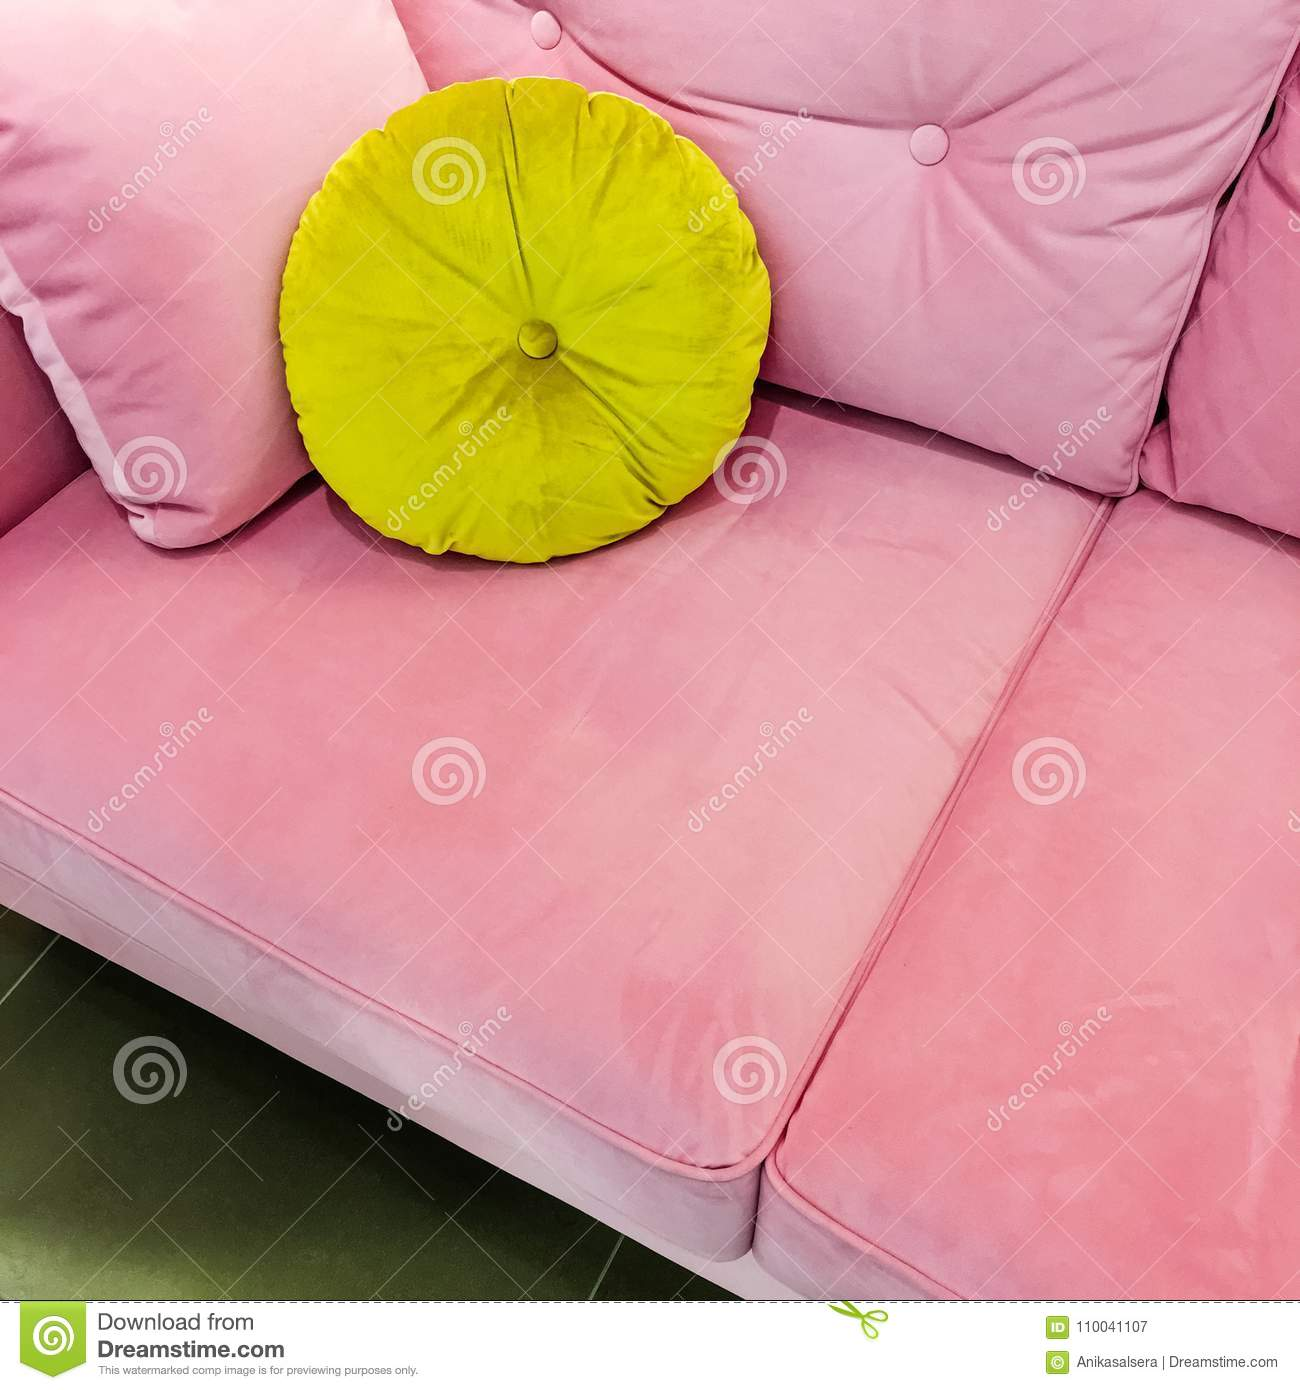 Picture of: Pink Velvet Sofa With Fancy Green Cushion Stock Image Image Of Comfortable Pillow 110041107